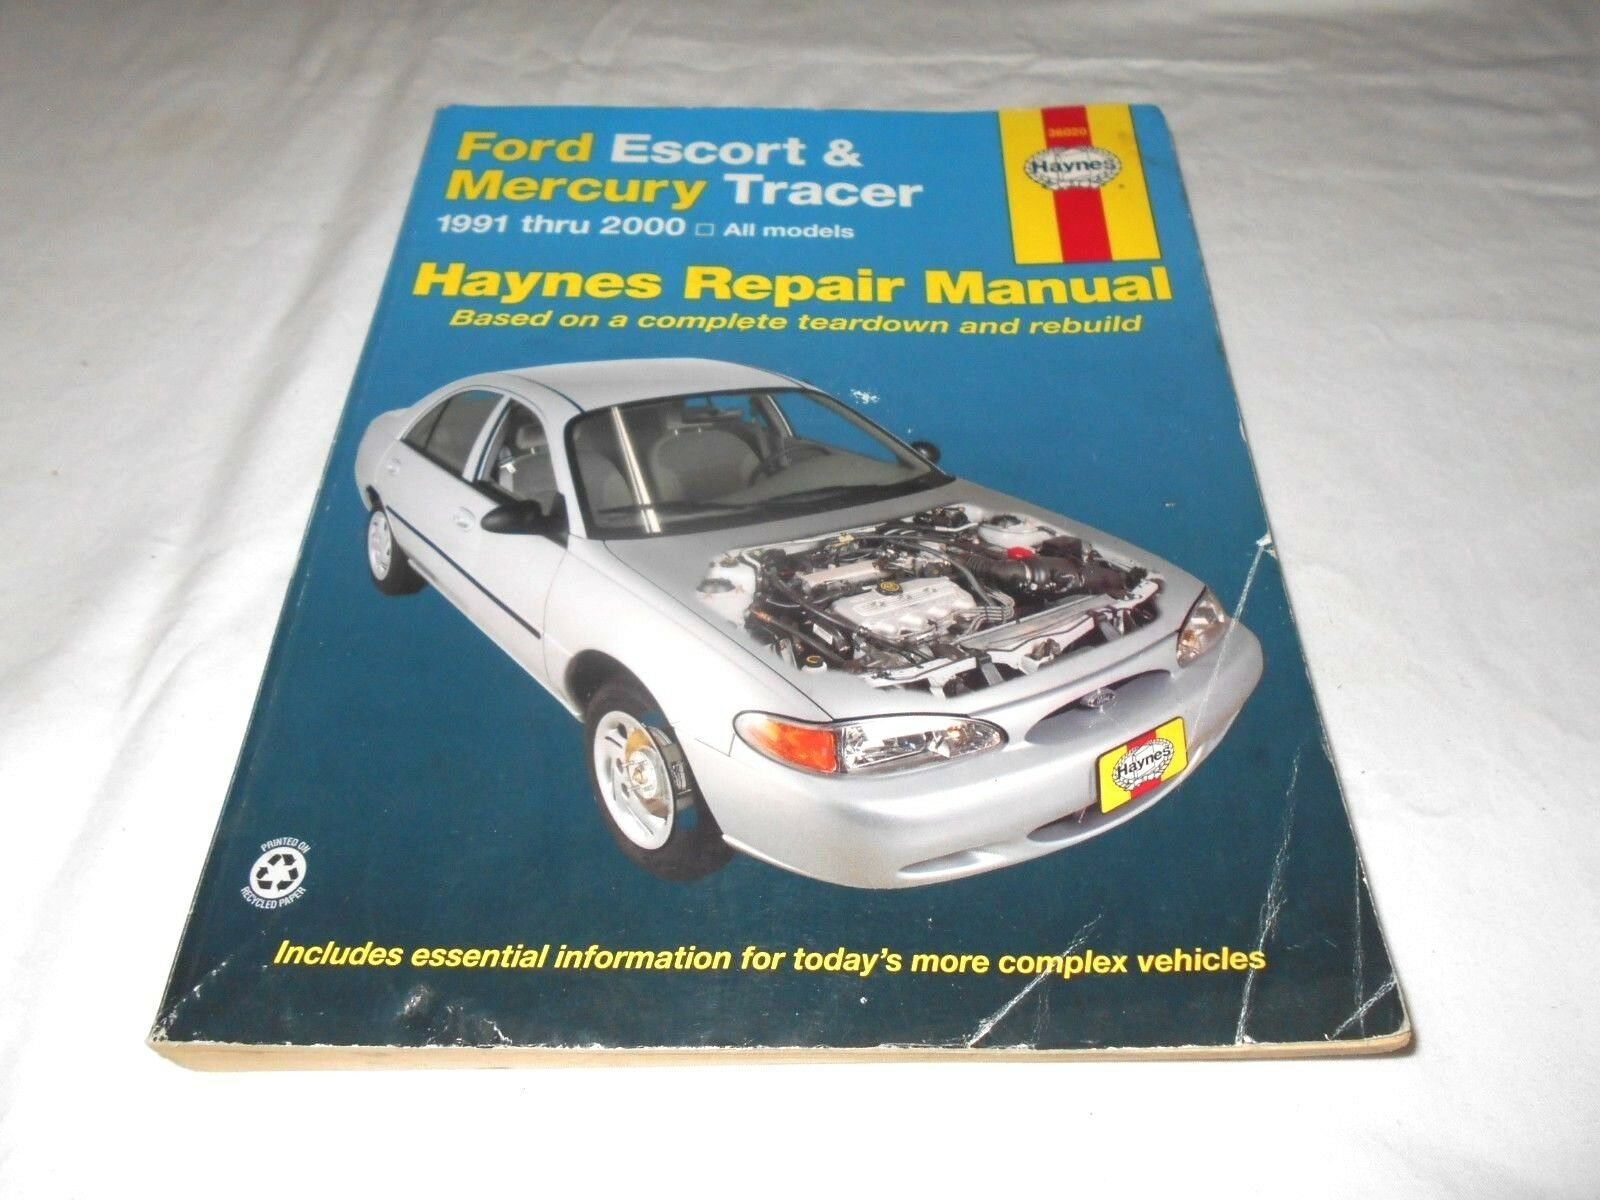 Ford ESCORT & Mercury Tracer All Models 1991 Thru 2000 Haynes Repair Manual  | eBay